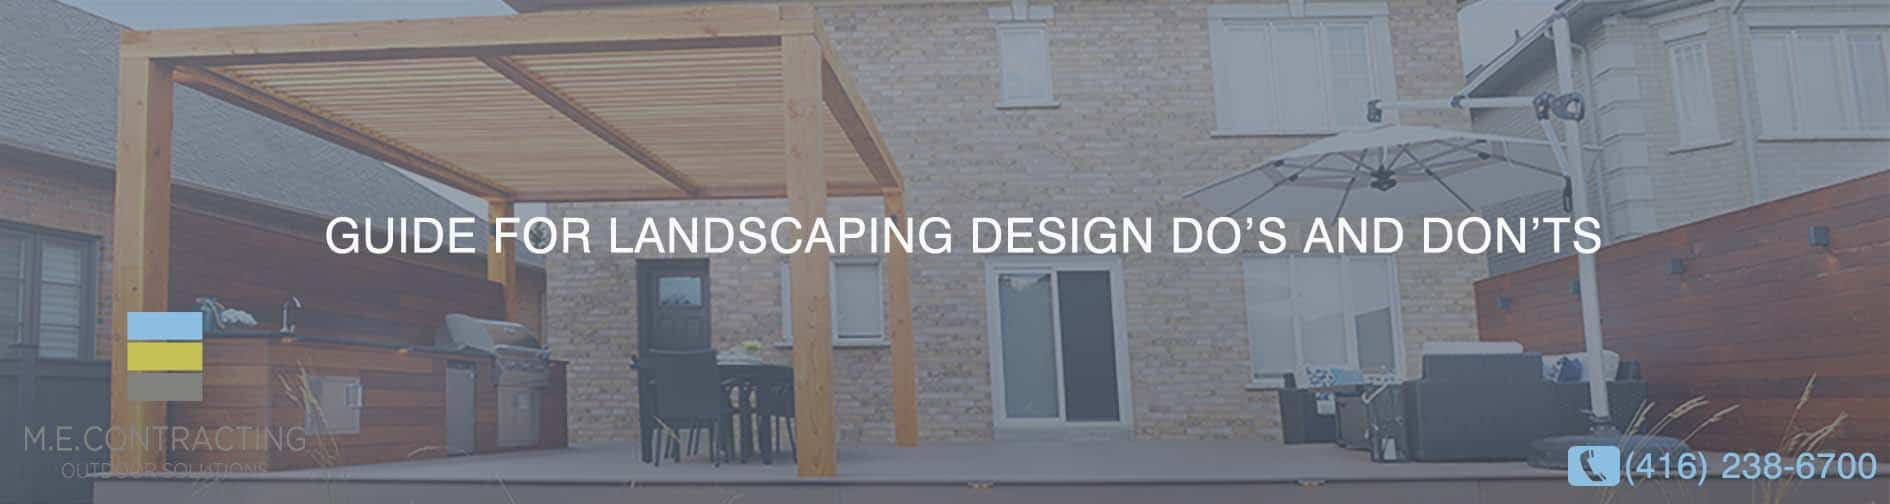 GUIDE FOR LANDSCAPING DESIGN DO'S AND DON'TS